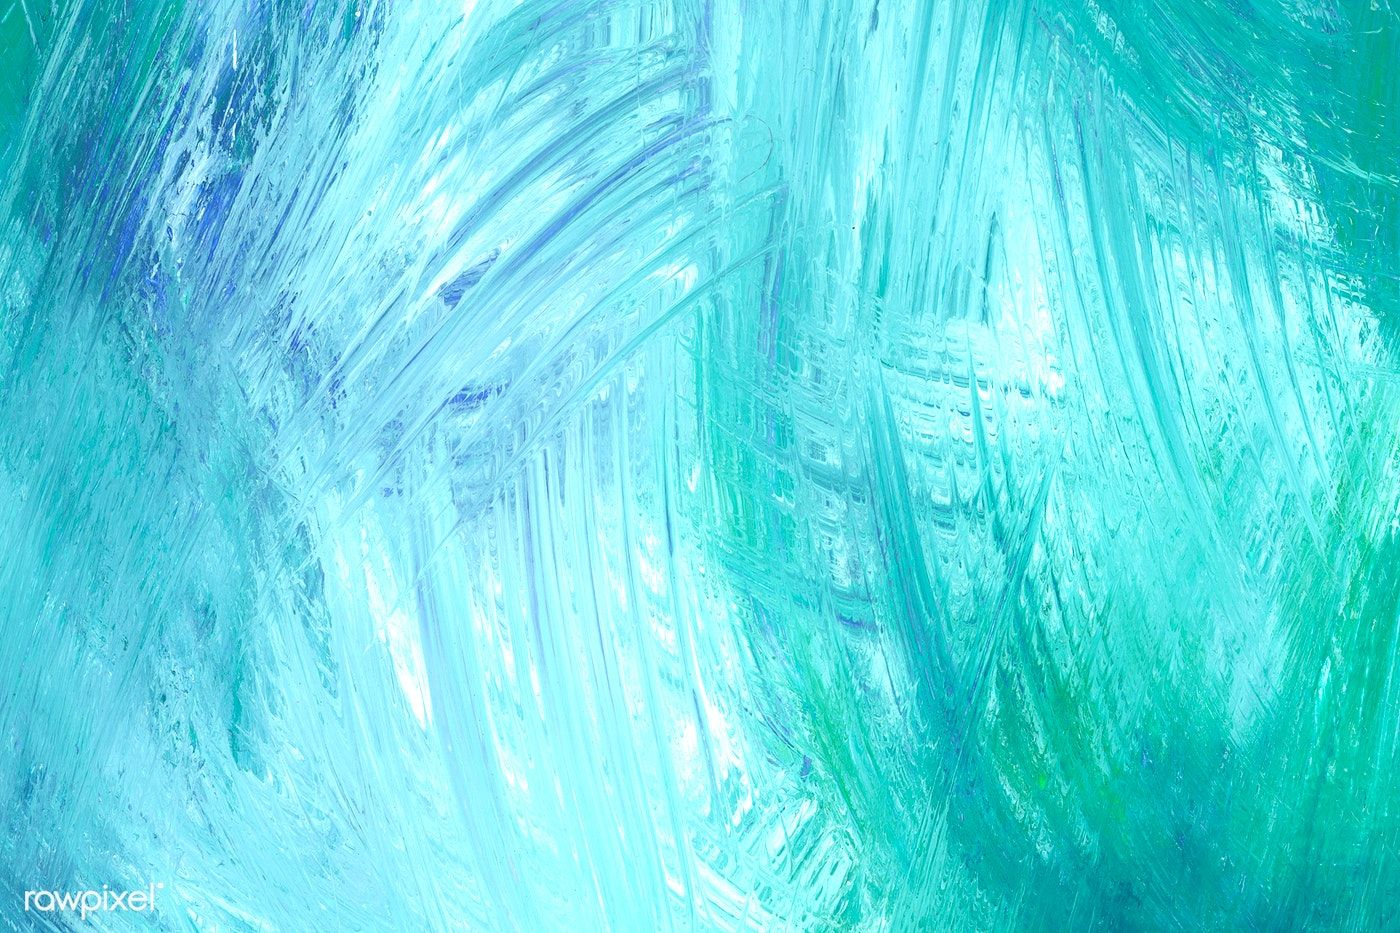 Teal brush stroke textured background free image by